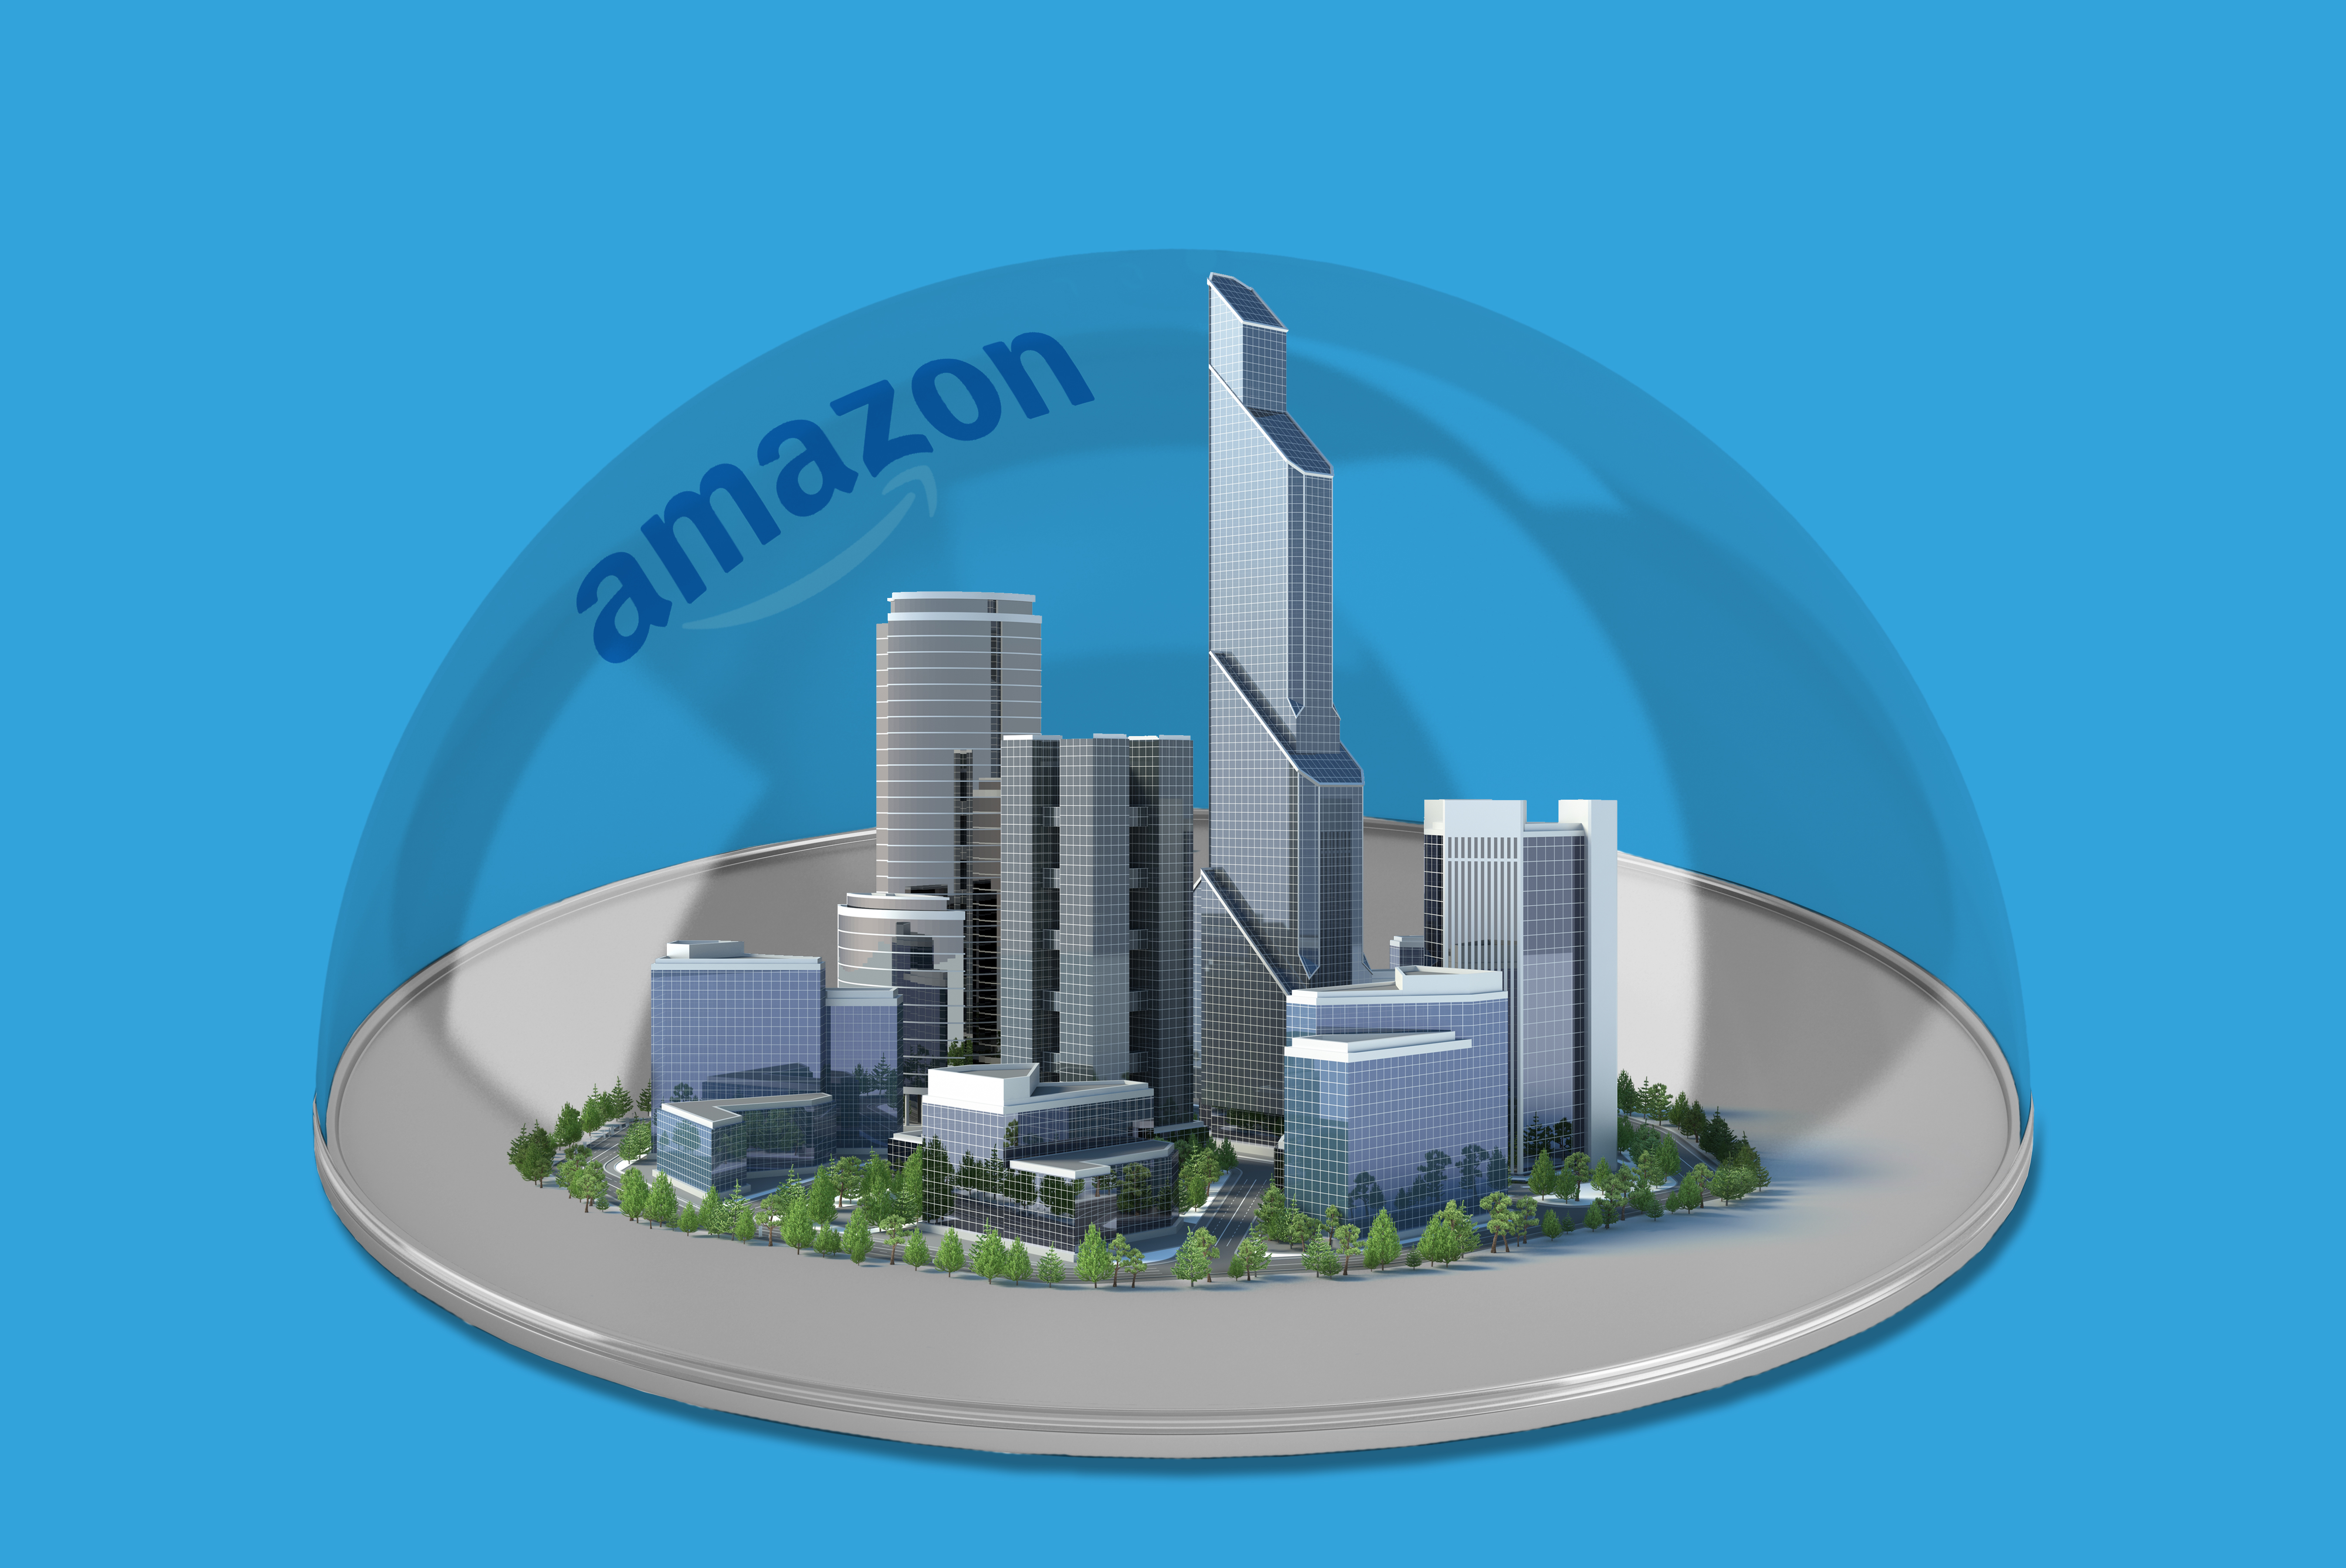 180109-amazon-future-products-secure-city